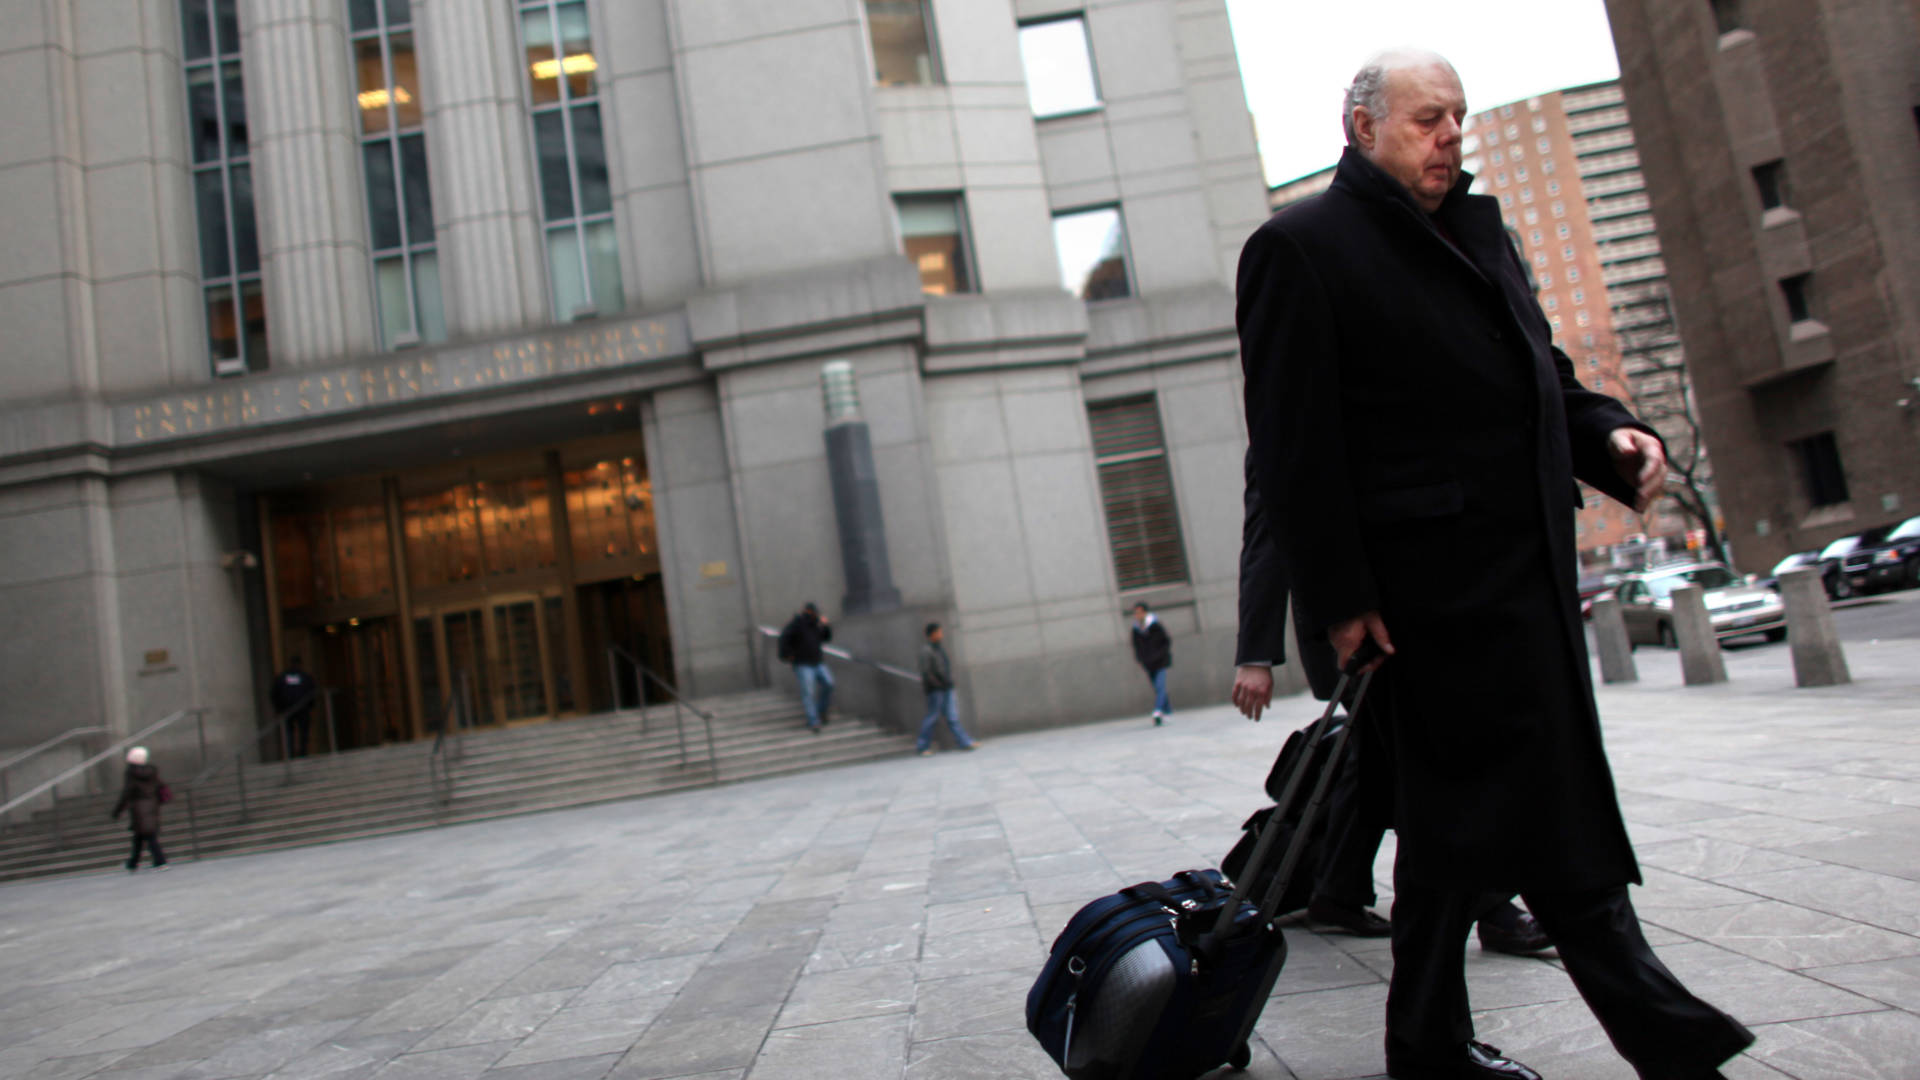 John Dowd, seen in New York City in 2011, has resigned from the Trump team. Yana Paskova/Getty Images